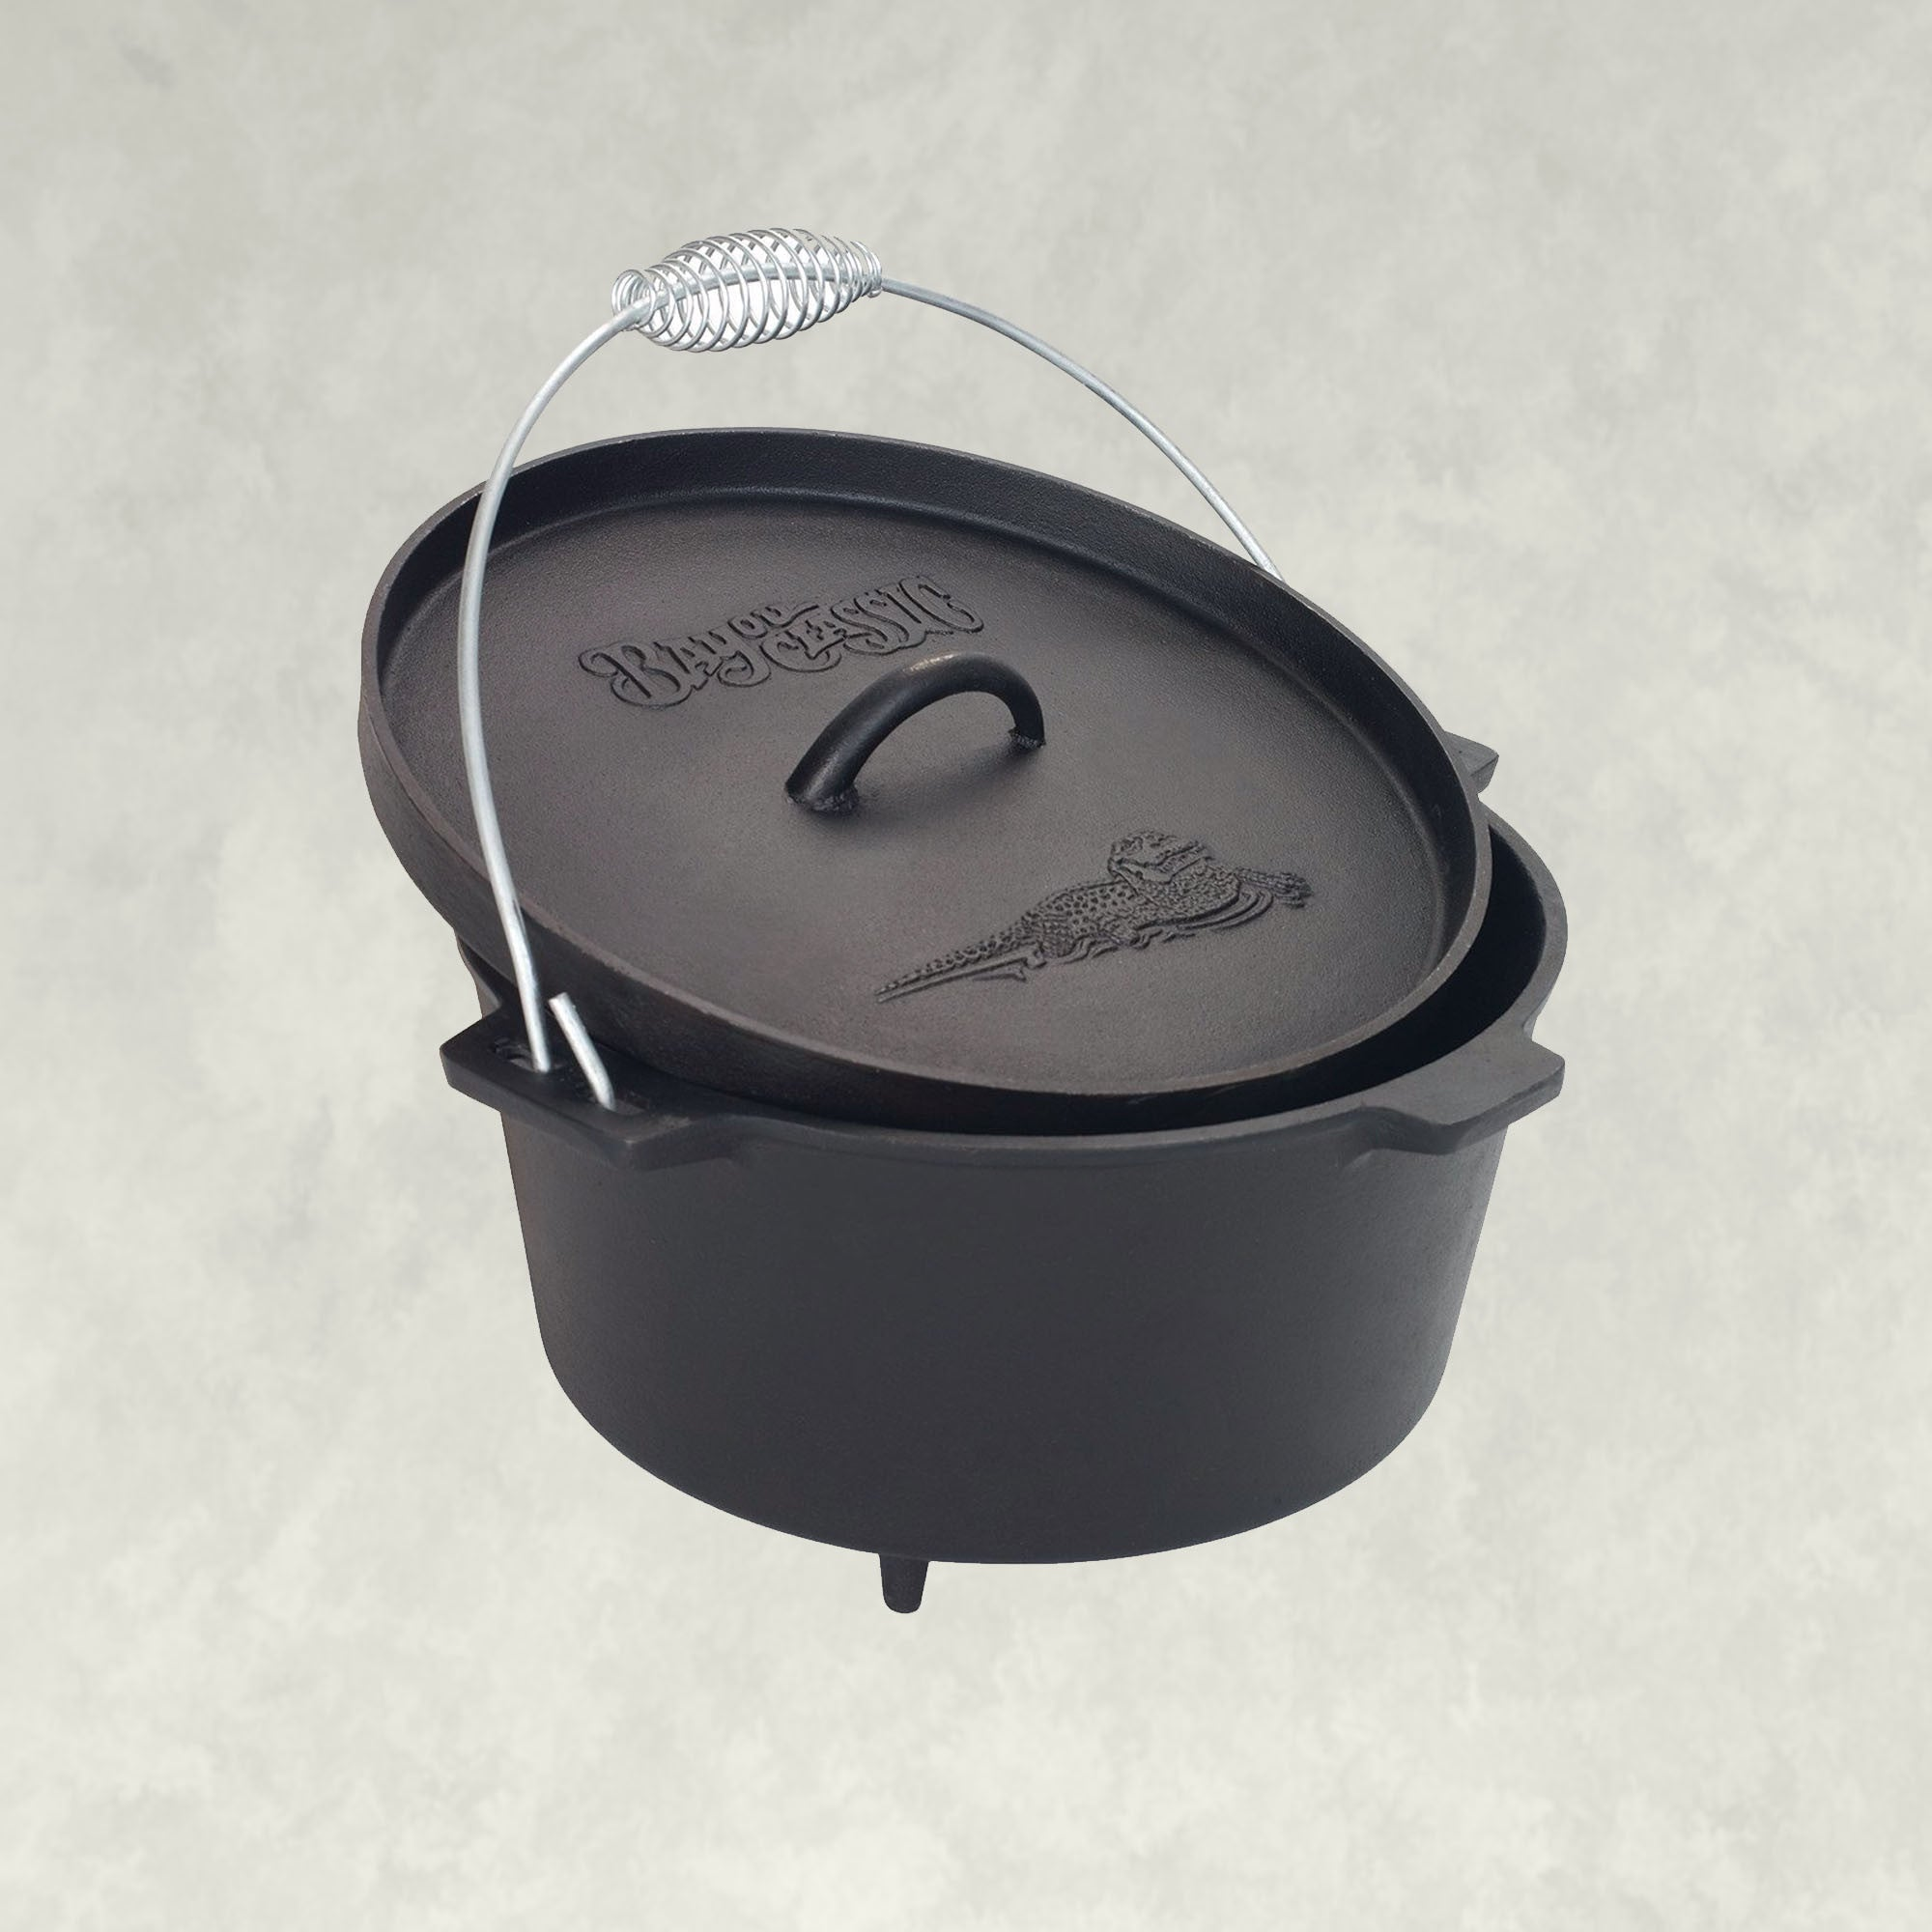 8-qt Camp Dutch Oven with feet